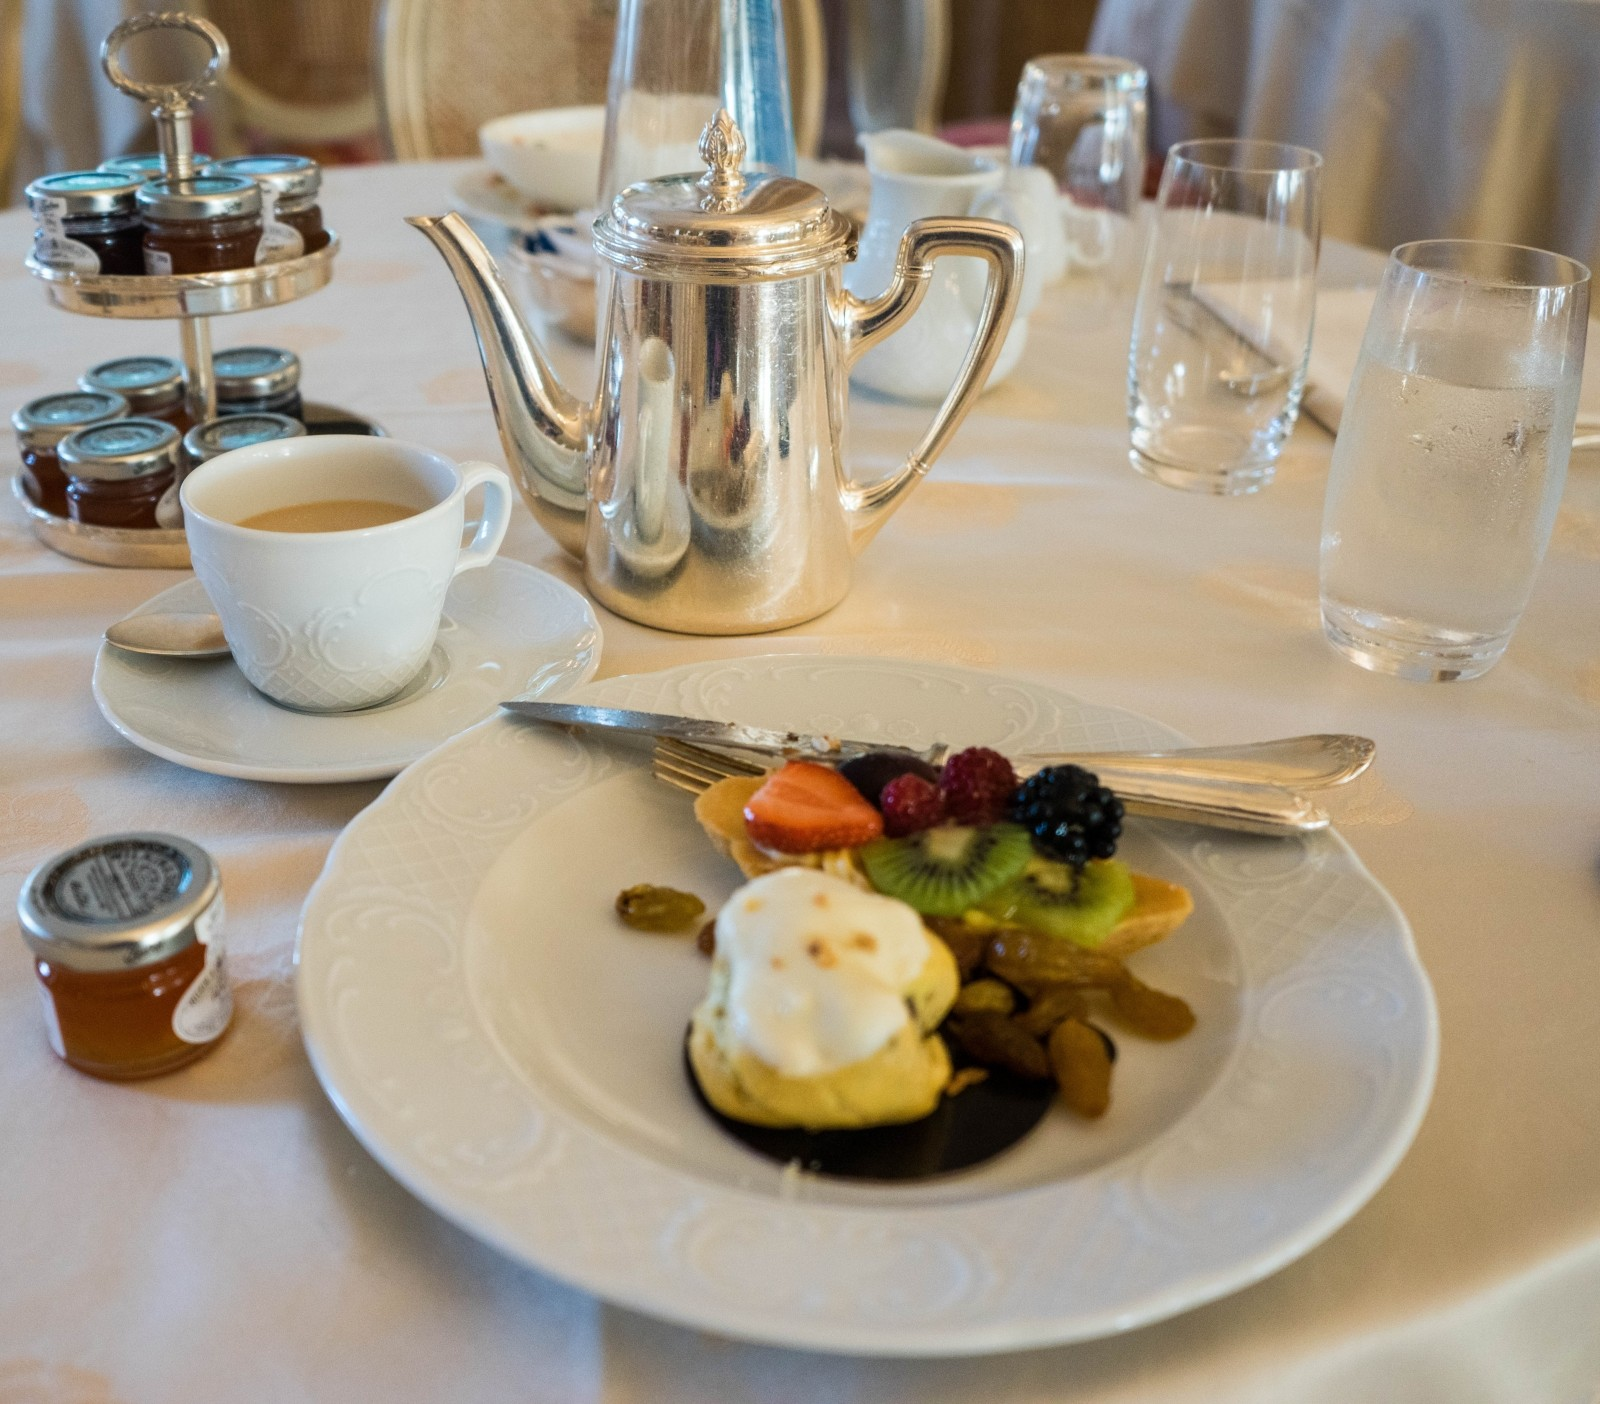 breakfast-luxury-italy-hotel-food-meal-service